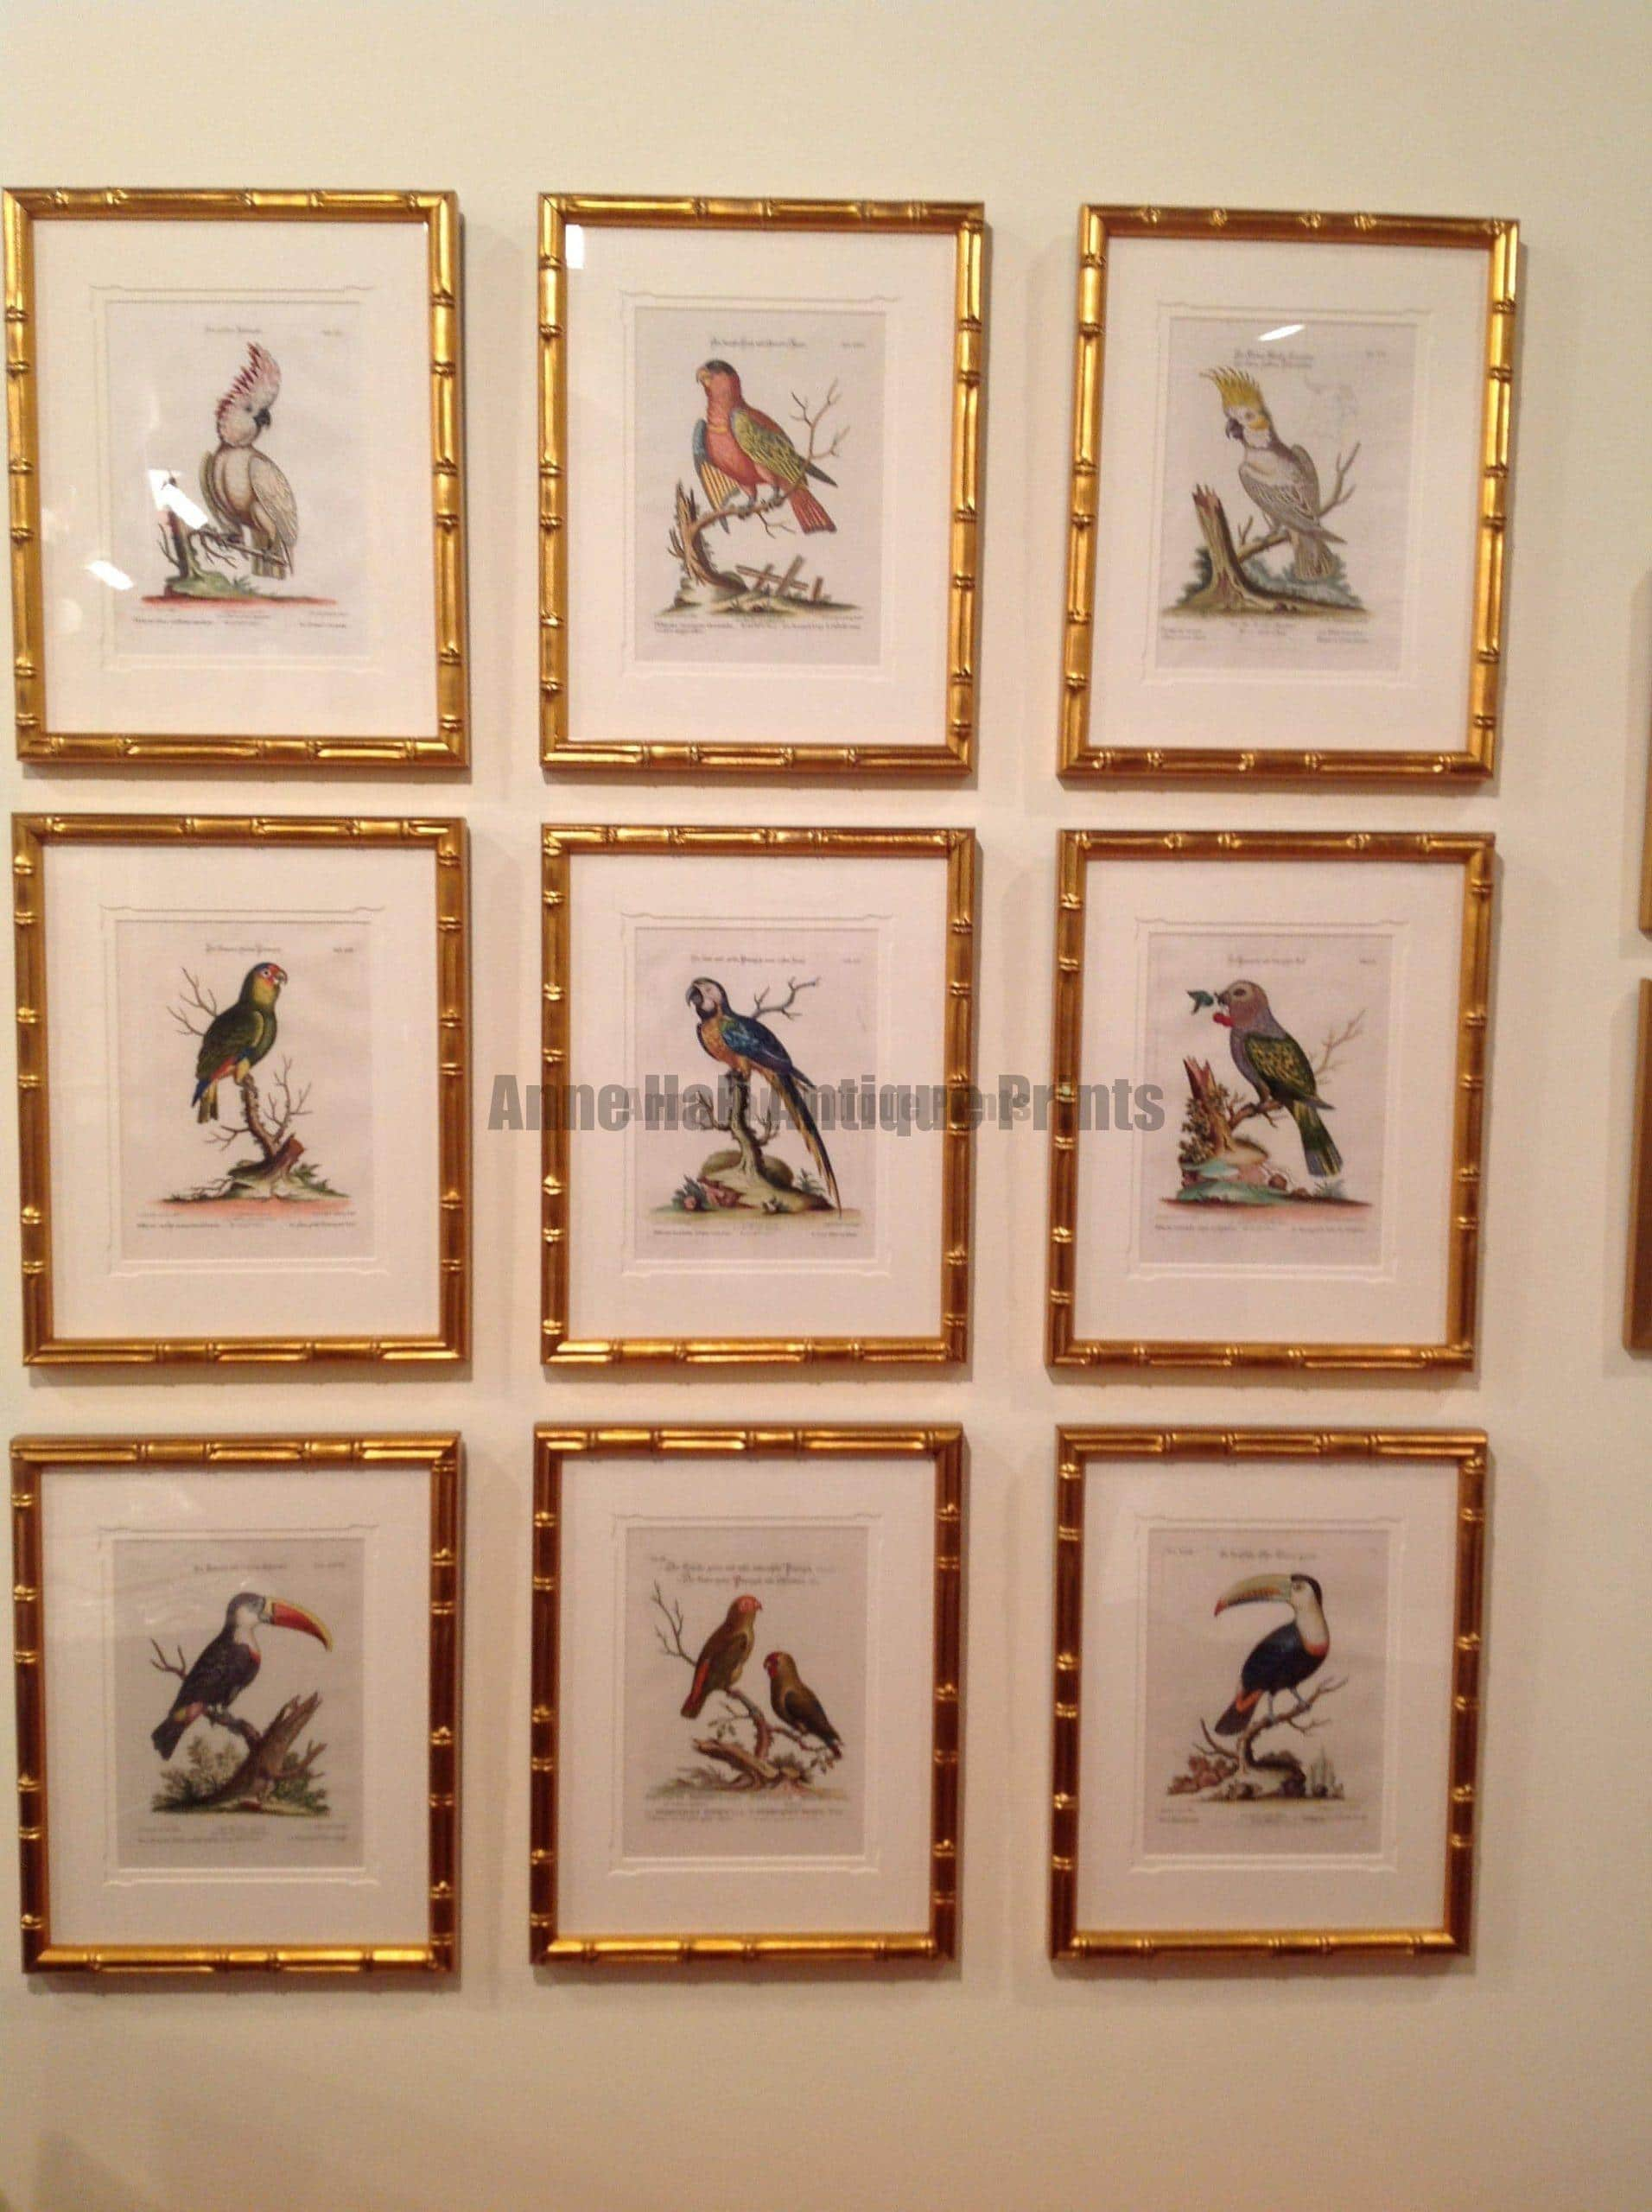 A striking display of nine framed George Edwards Parrots displayed stacked in 3 rows of three. Framed in gold leaf over red paint,  bamboo picture frames